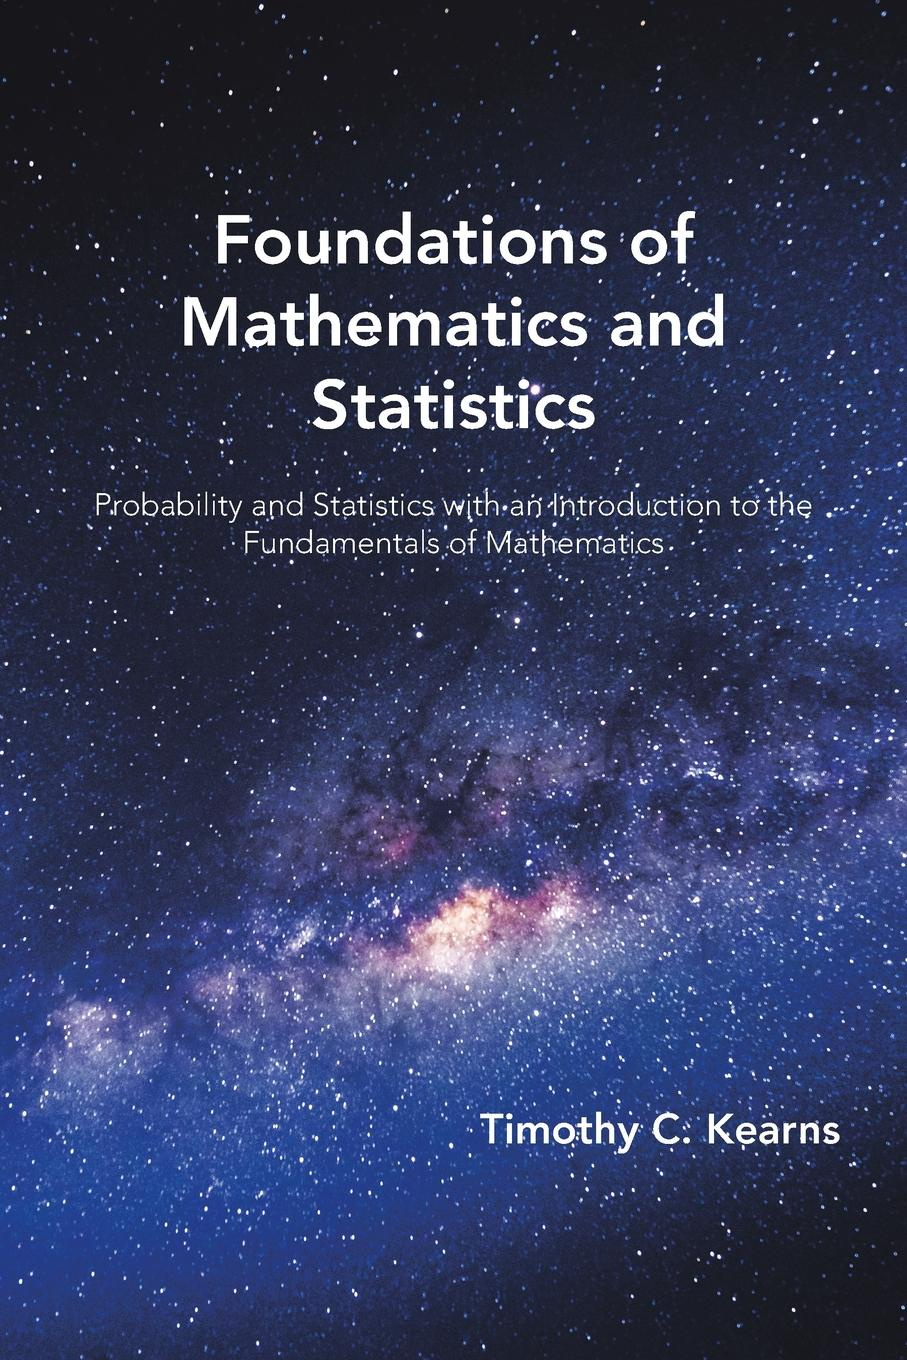 Timothy C. Kearns Foundations of Mathematics and Statistics. Probability and Statistics with an Introduction to the Fundamentals of Mathematics jason matthiopoulos how to be a quantitative ecologist the a to r of green mathematics and statistics